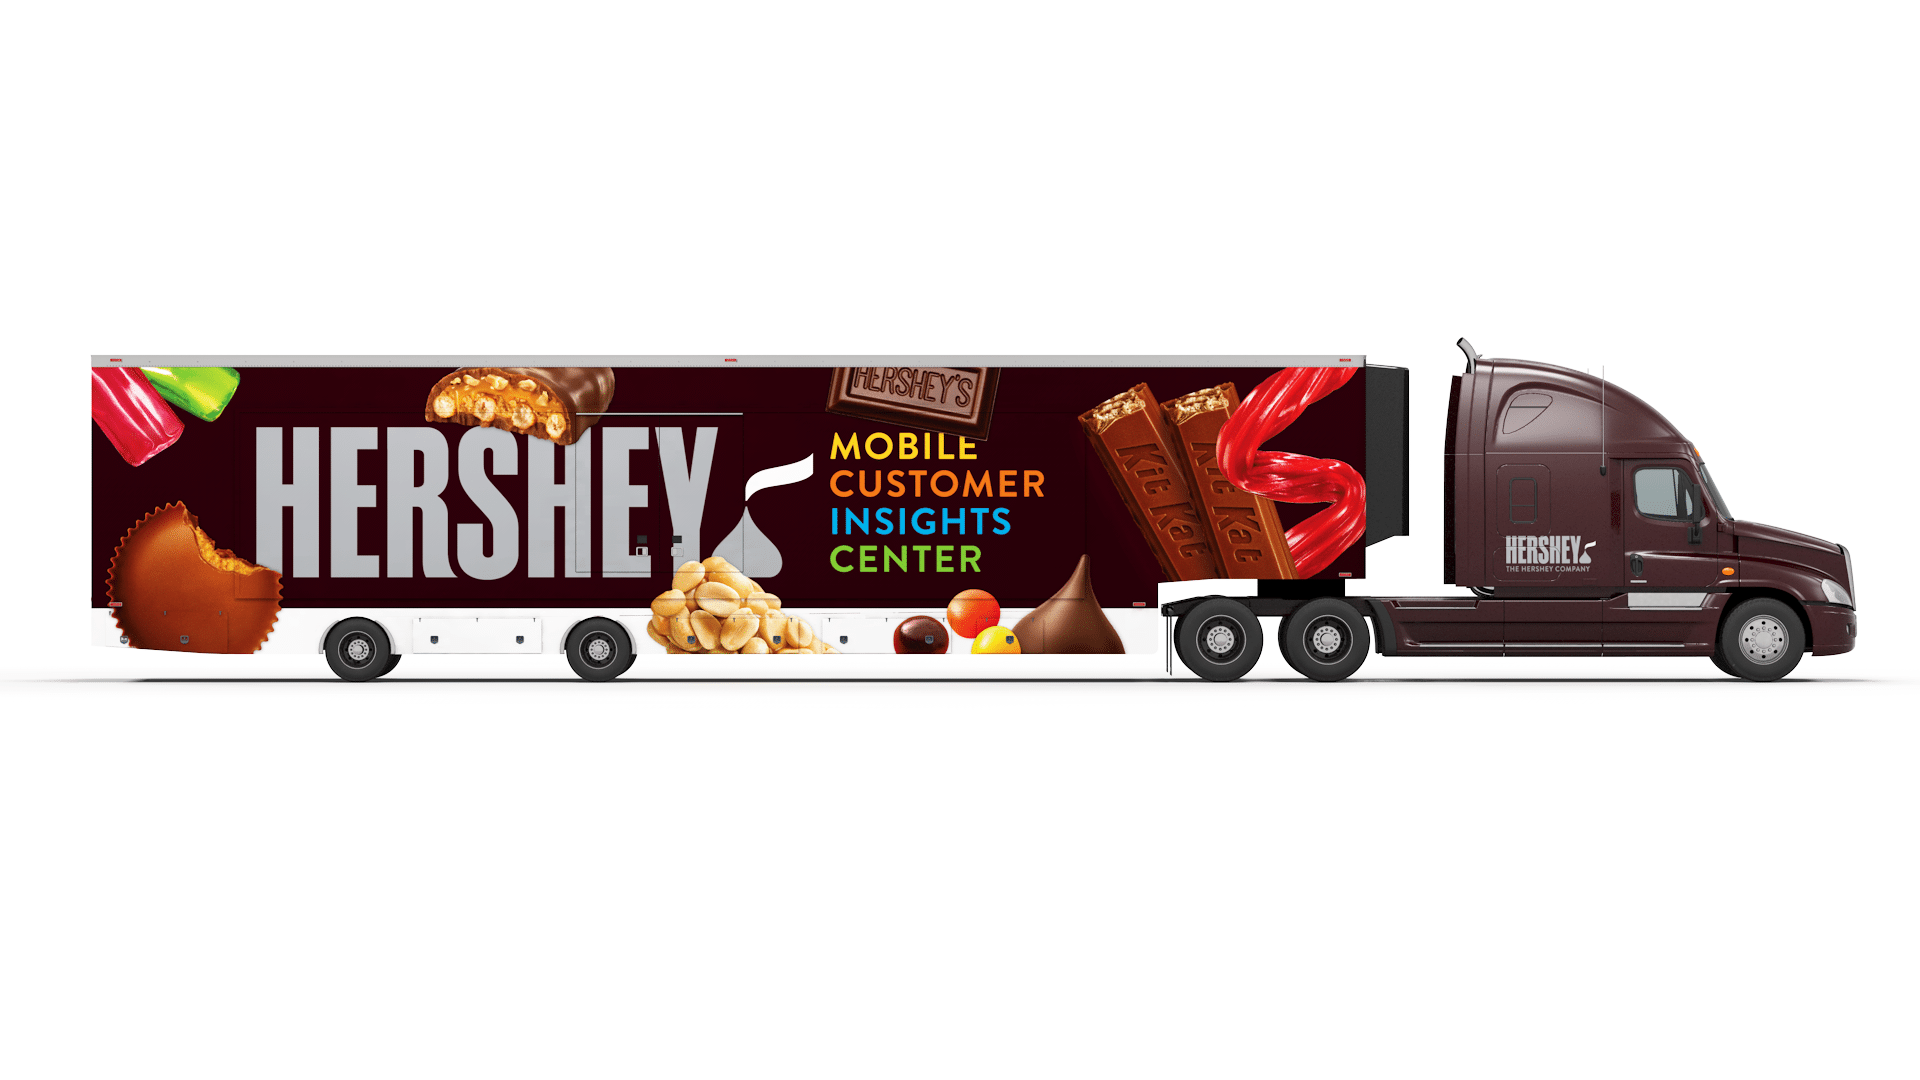 Hershey Unveils Mobile Customer Insights Center